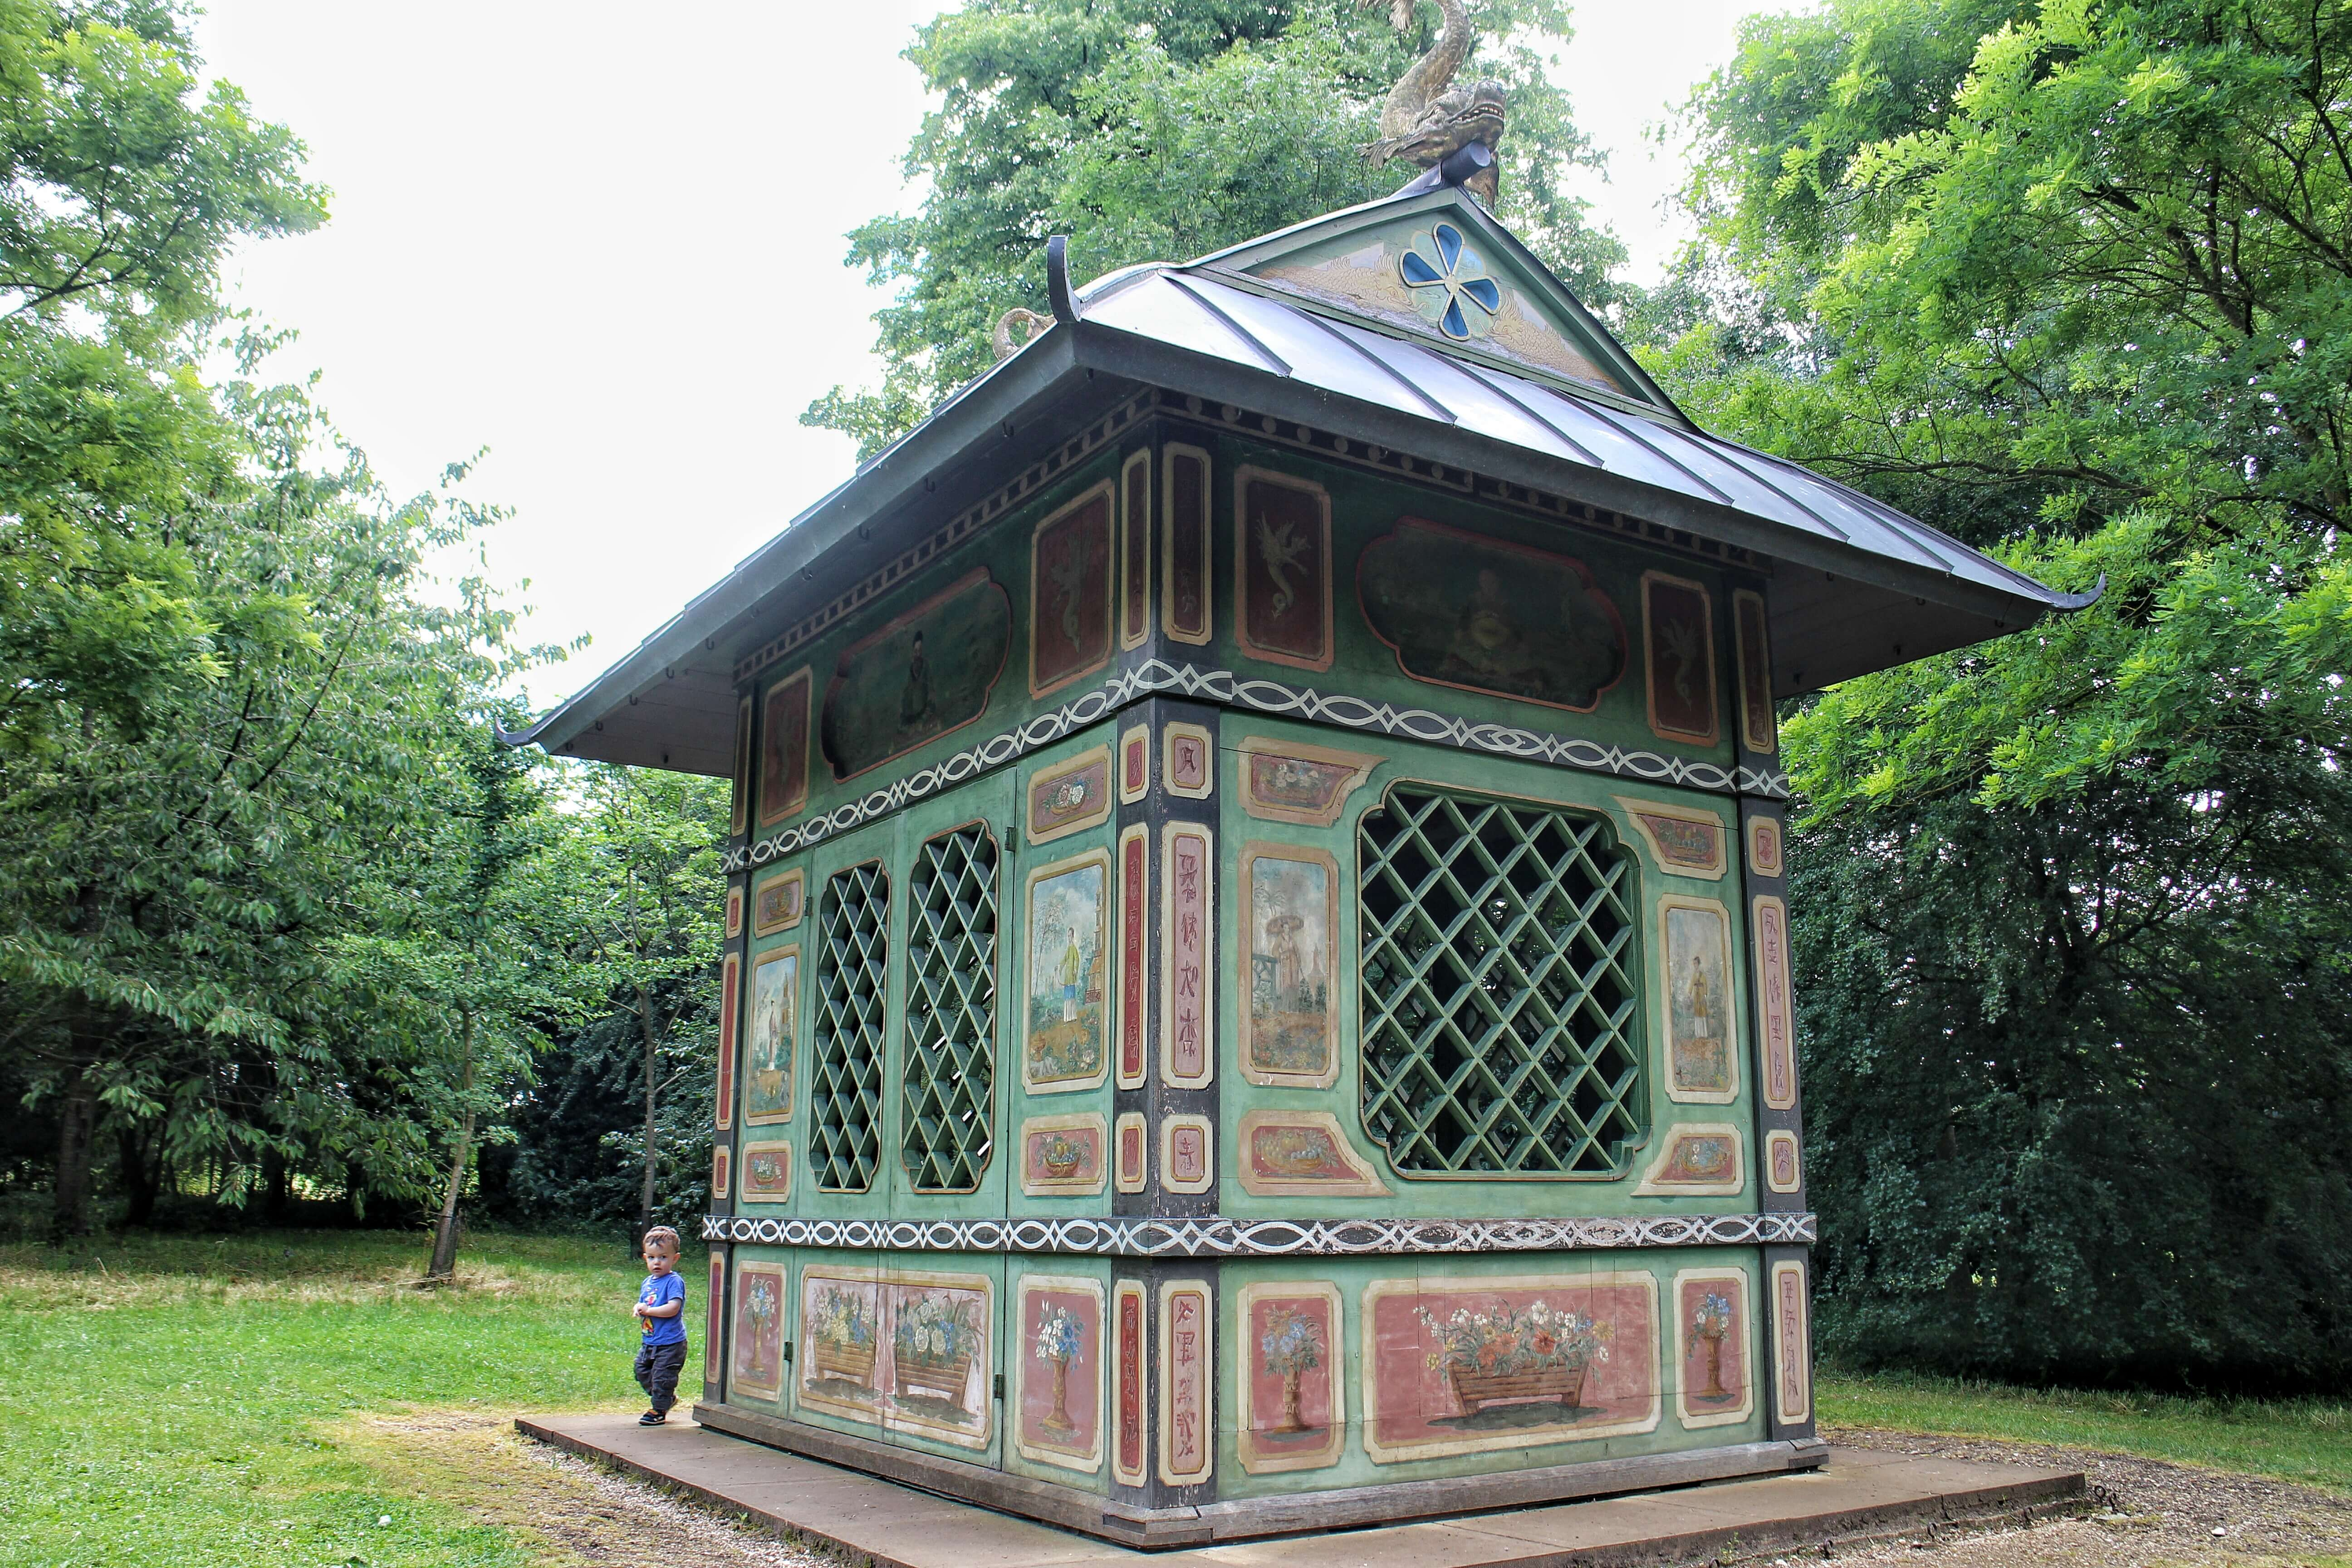 The Chinese House, Stowe Gardens